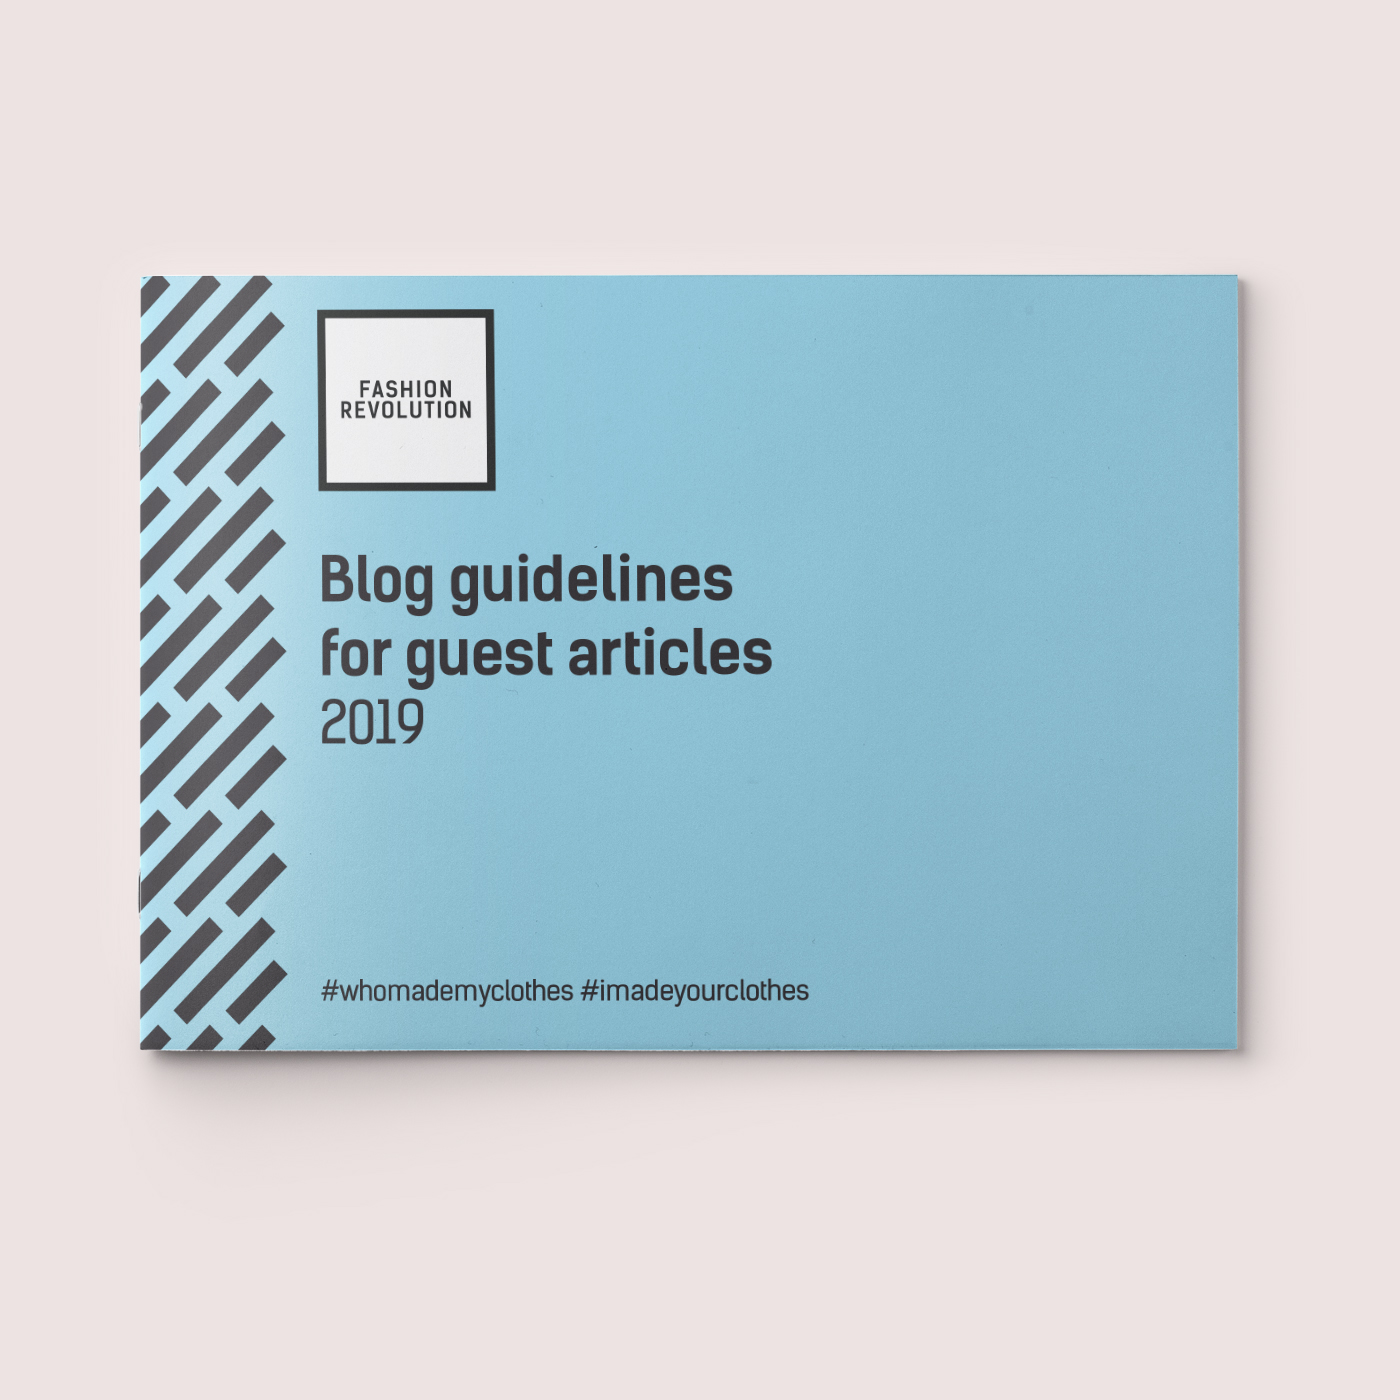 Blog guidelines for guest articles.